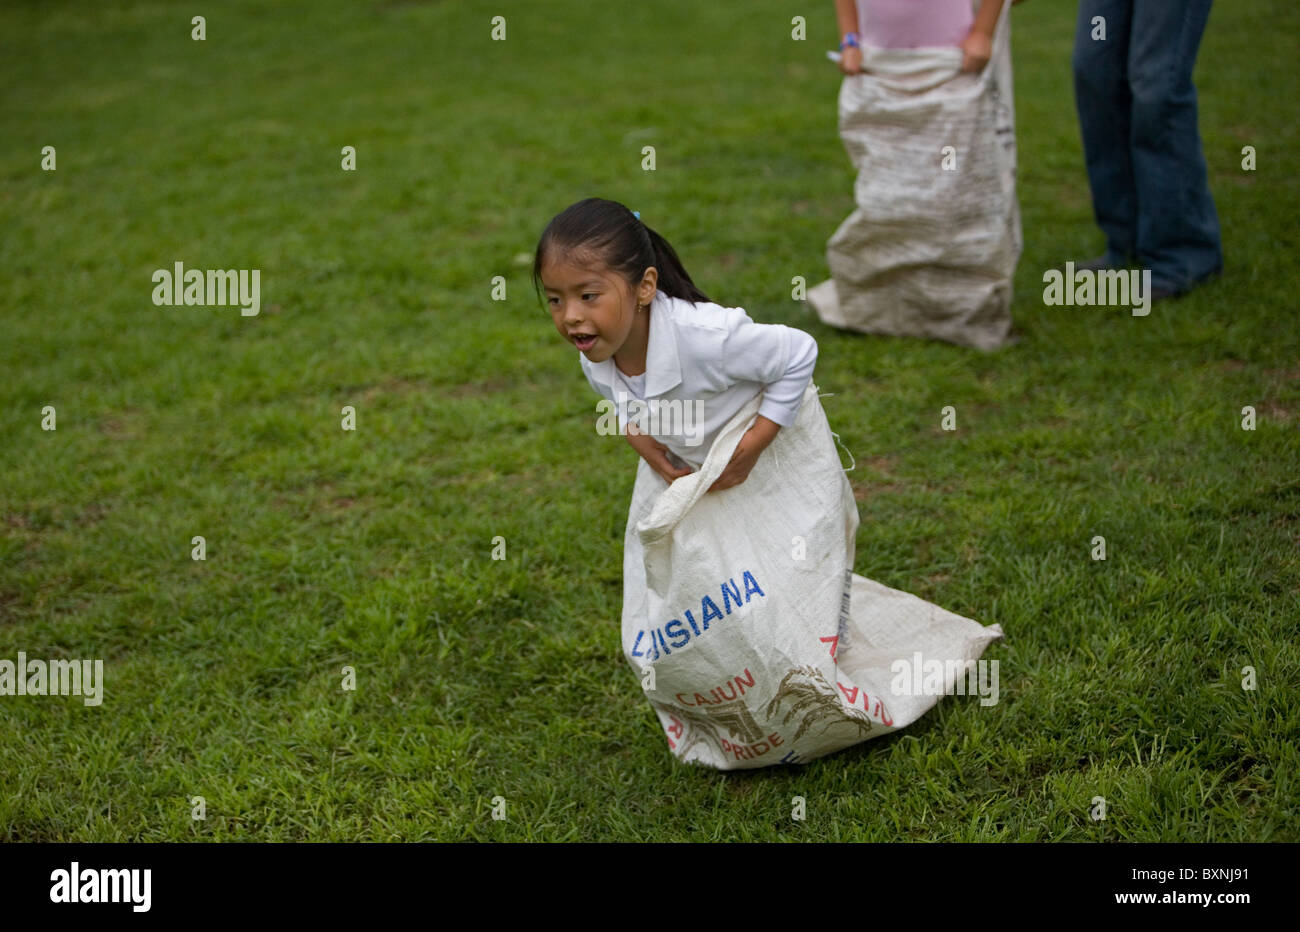 A girl participates in a running sack race during summer camp at a horse therapy center in Mexico City, July 29, - Stock Image